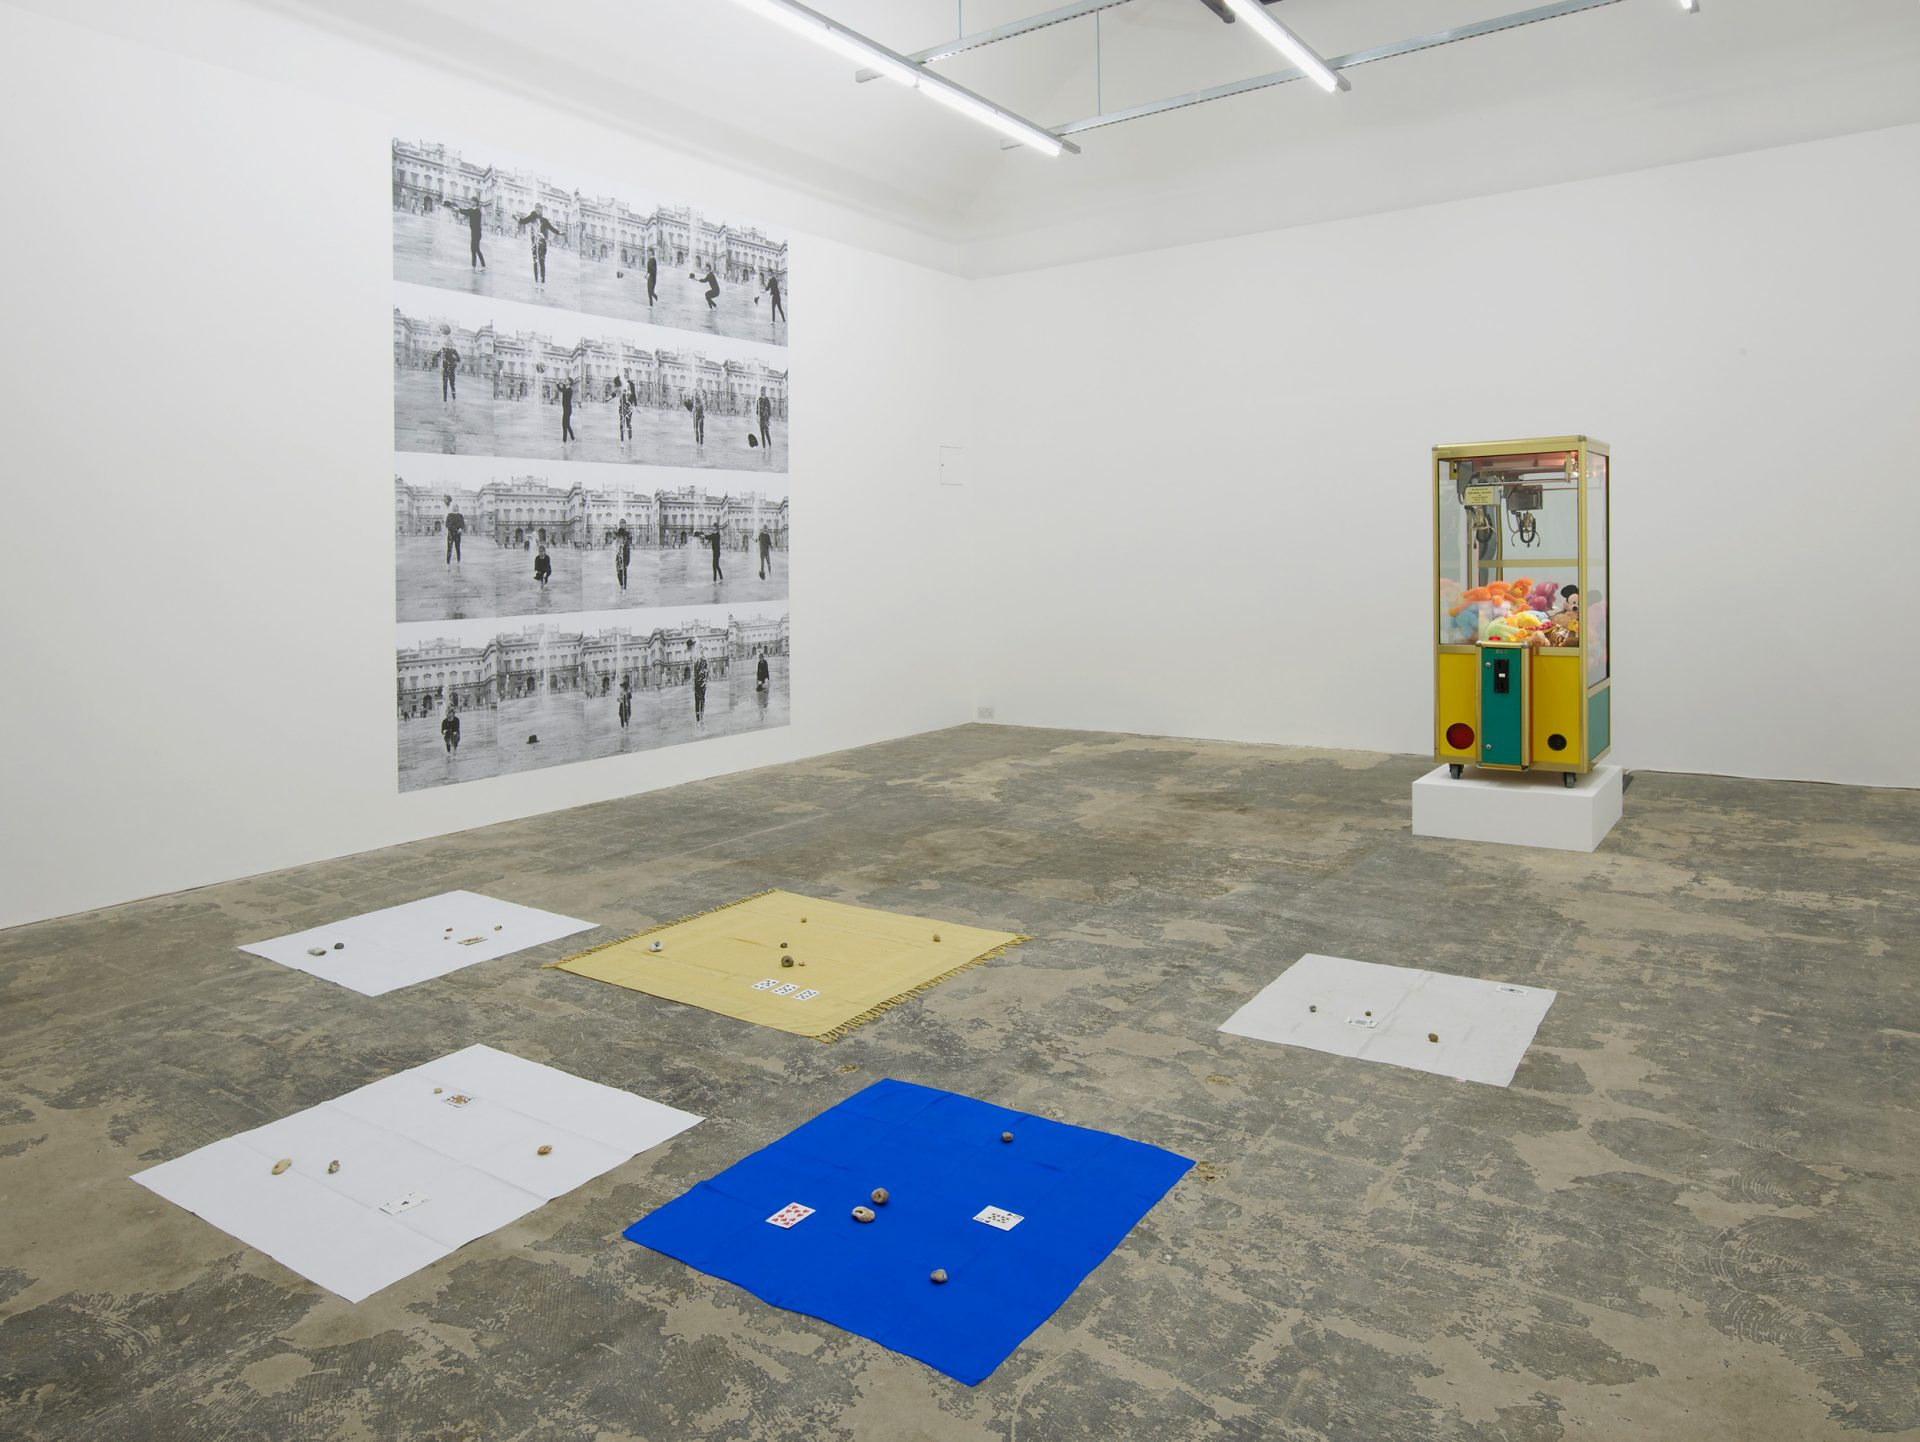 Ruth Proctor: Putting It On, 2015